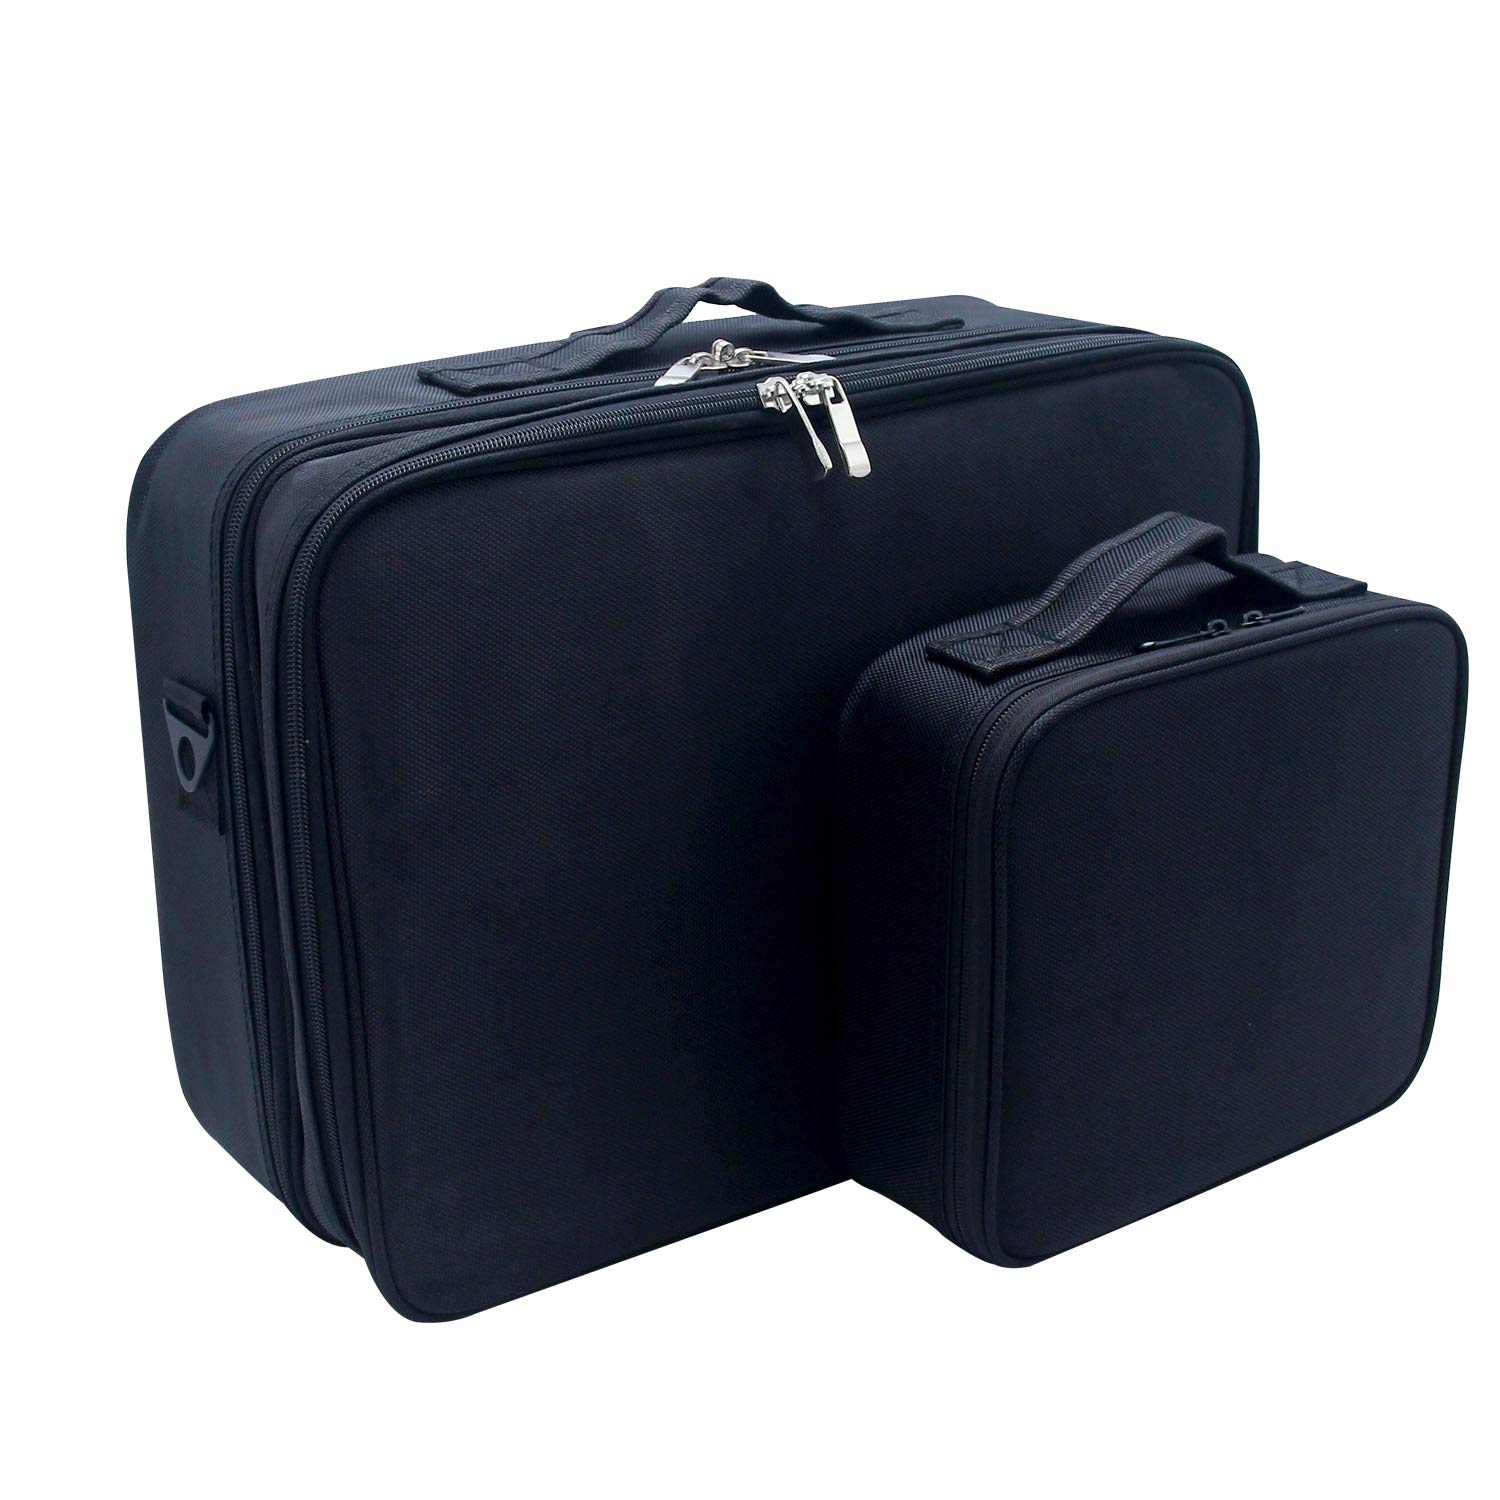 MONSTINA Cosmetic Bag Cosmetic Organizer Beauty Artist Storage Brush Box Large+Small,The Large One With Shoulder Strap(S+L,2Pcs Black)